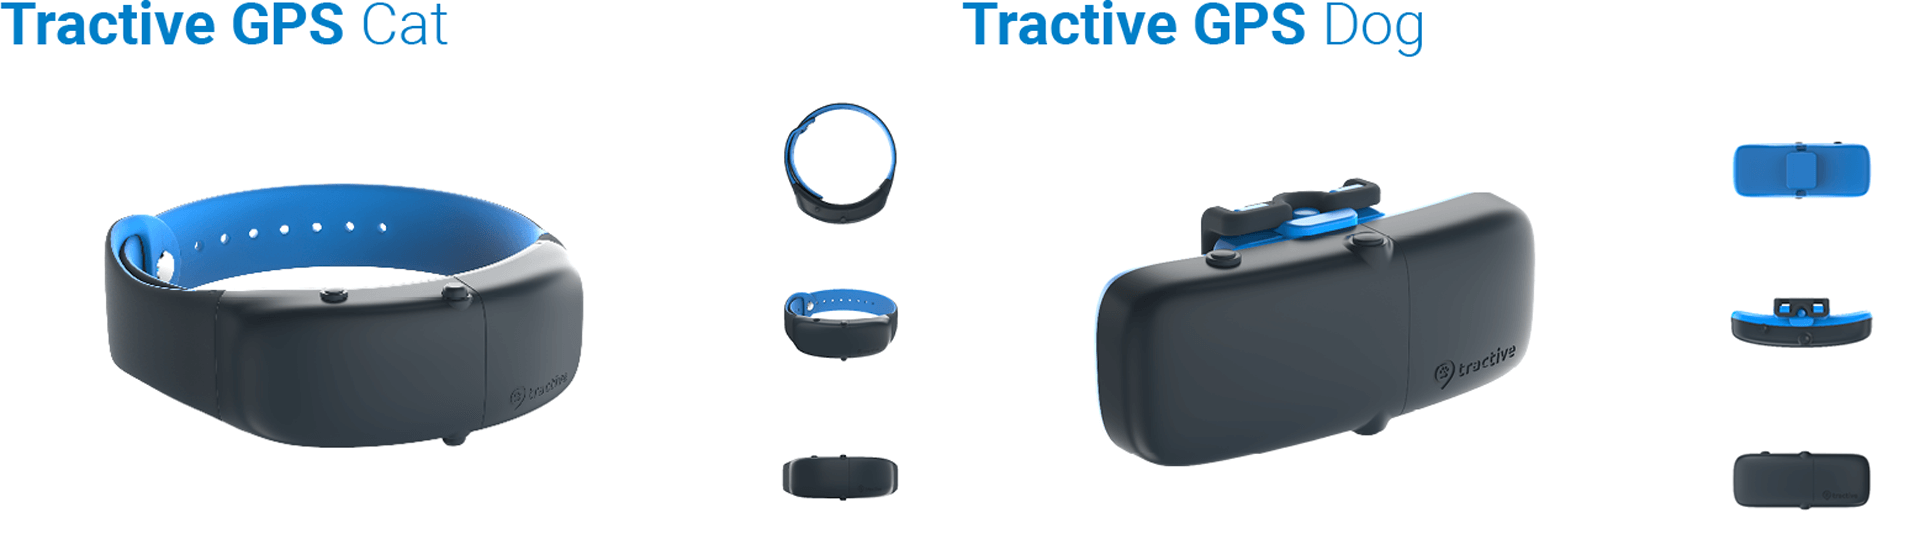 Tractive GPS Cat and Dog CES Announcement